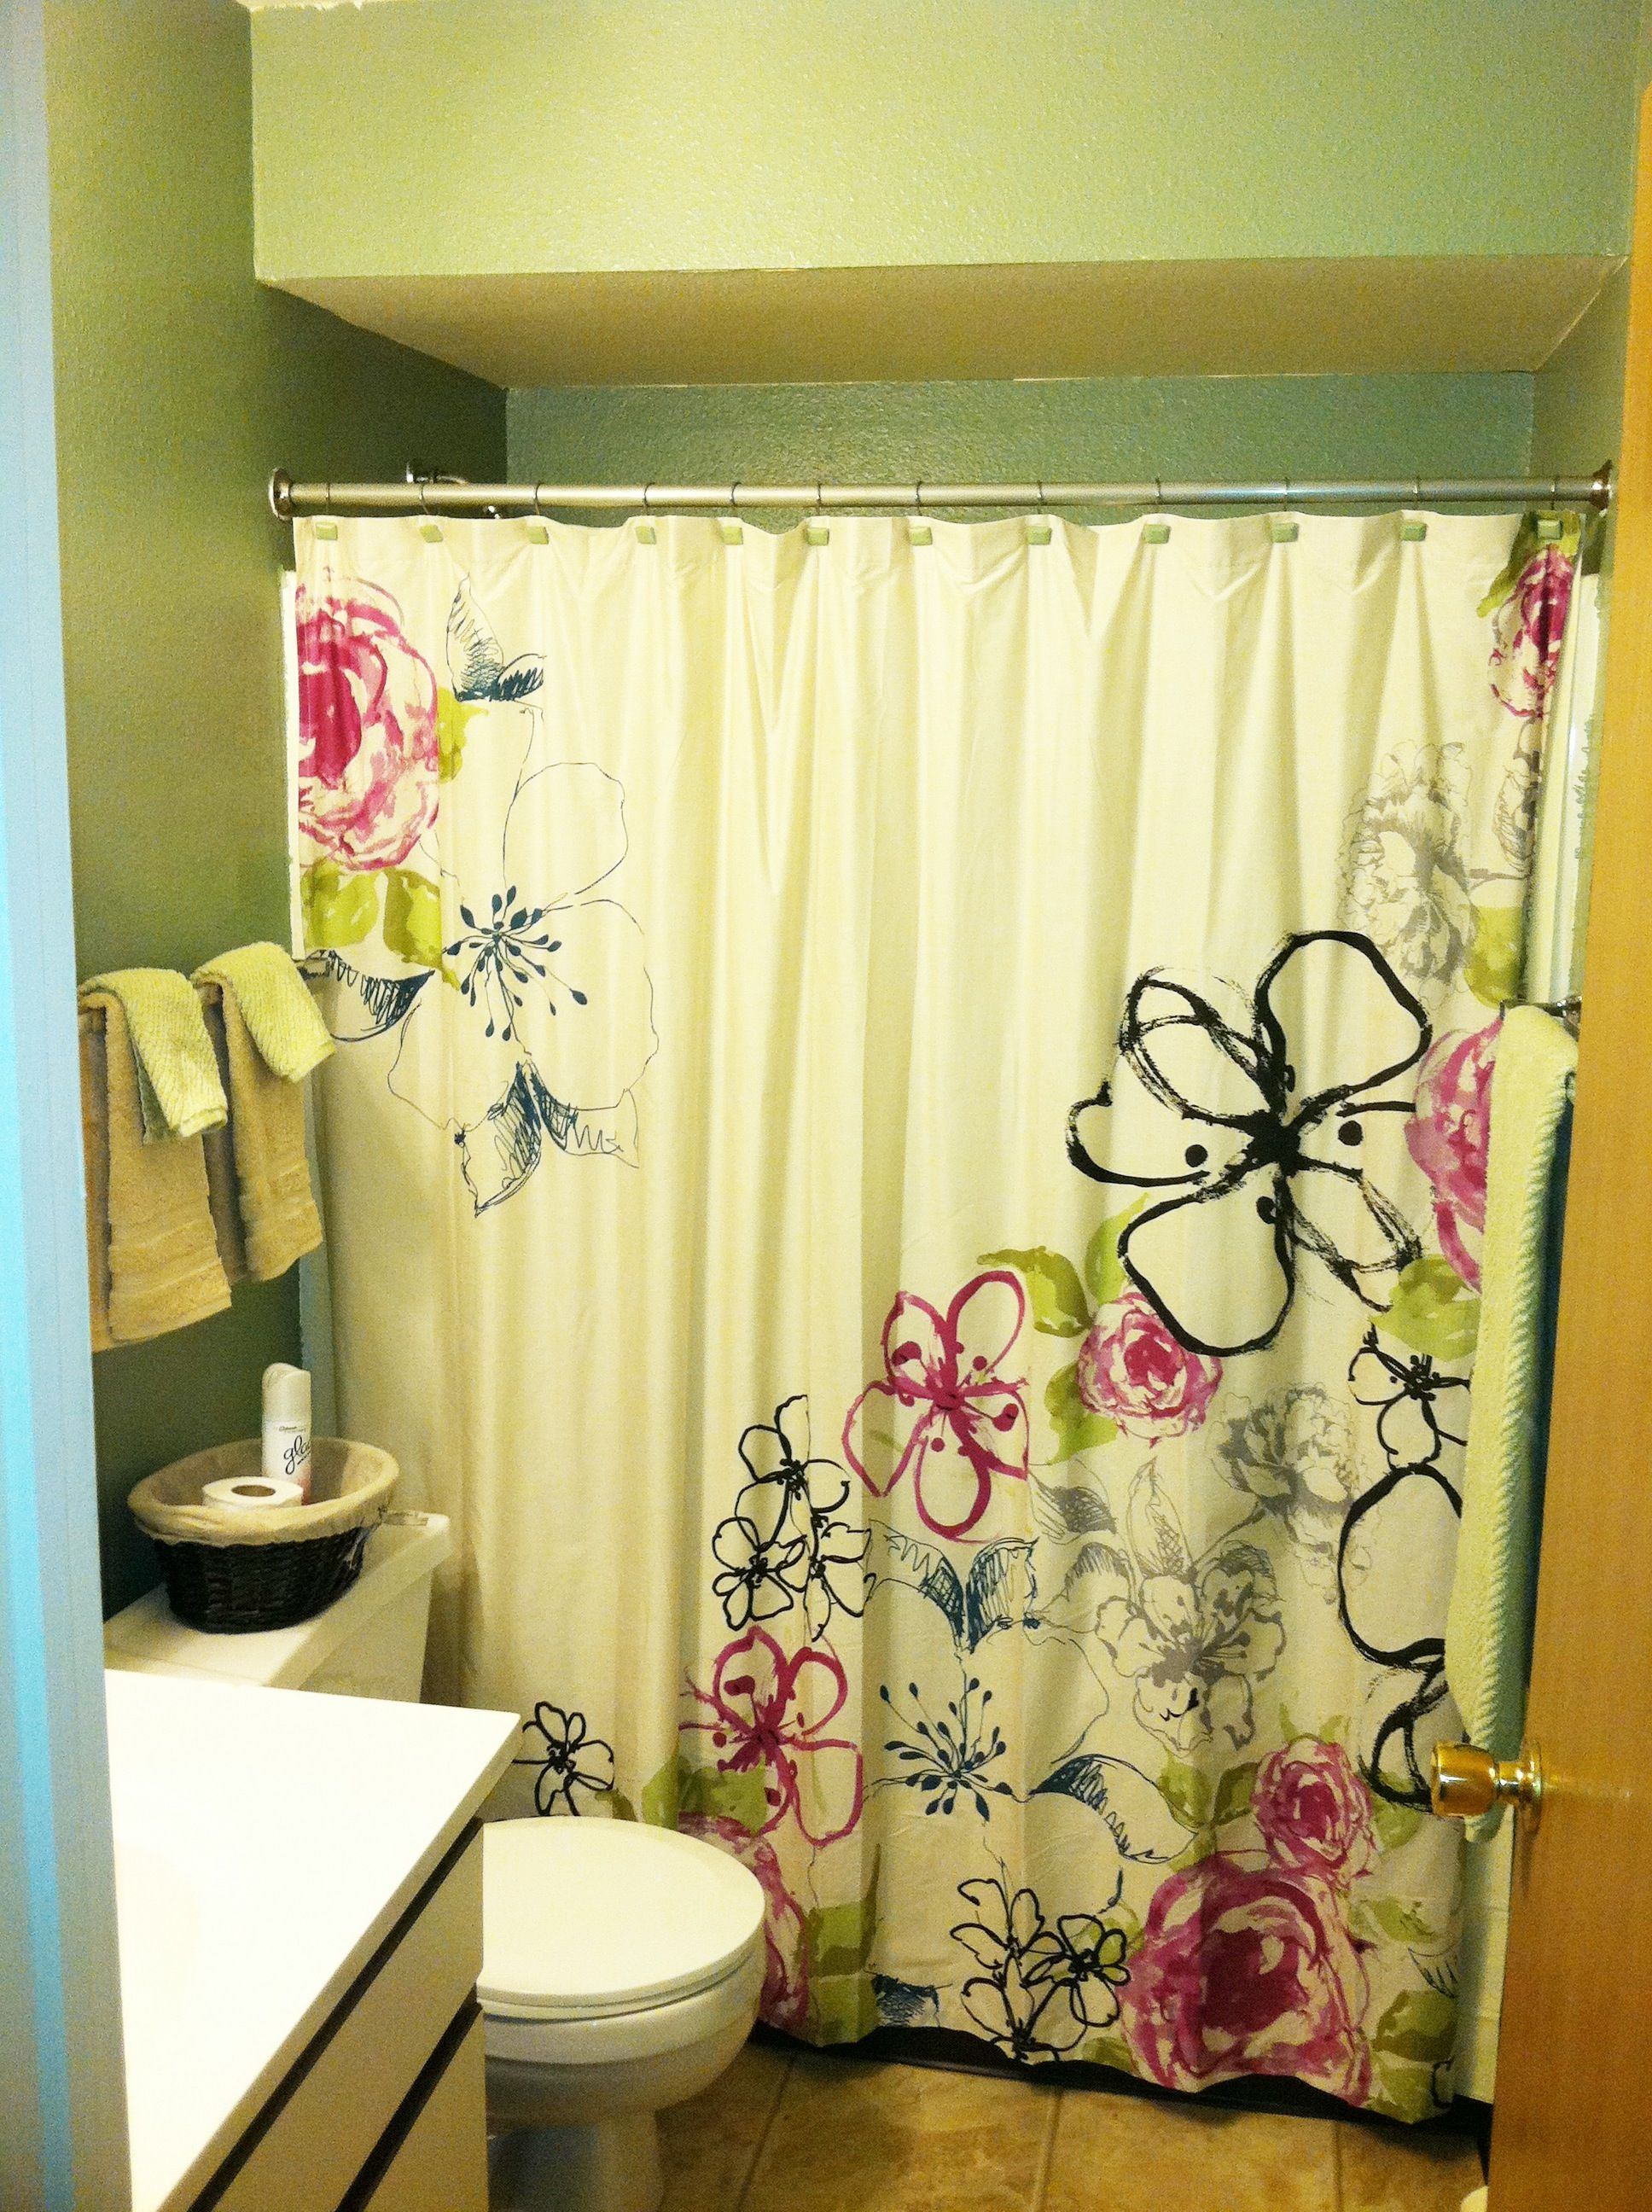 Bed bath and beyond window curtains  kody and my bathroom i decorated shower curtain from bed bath and